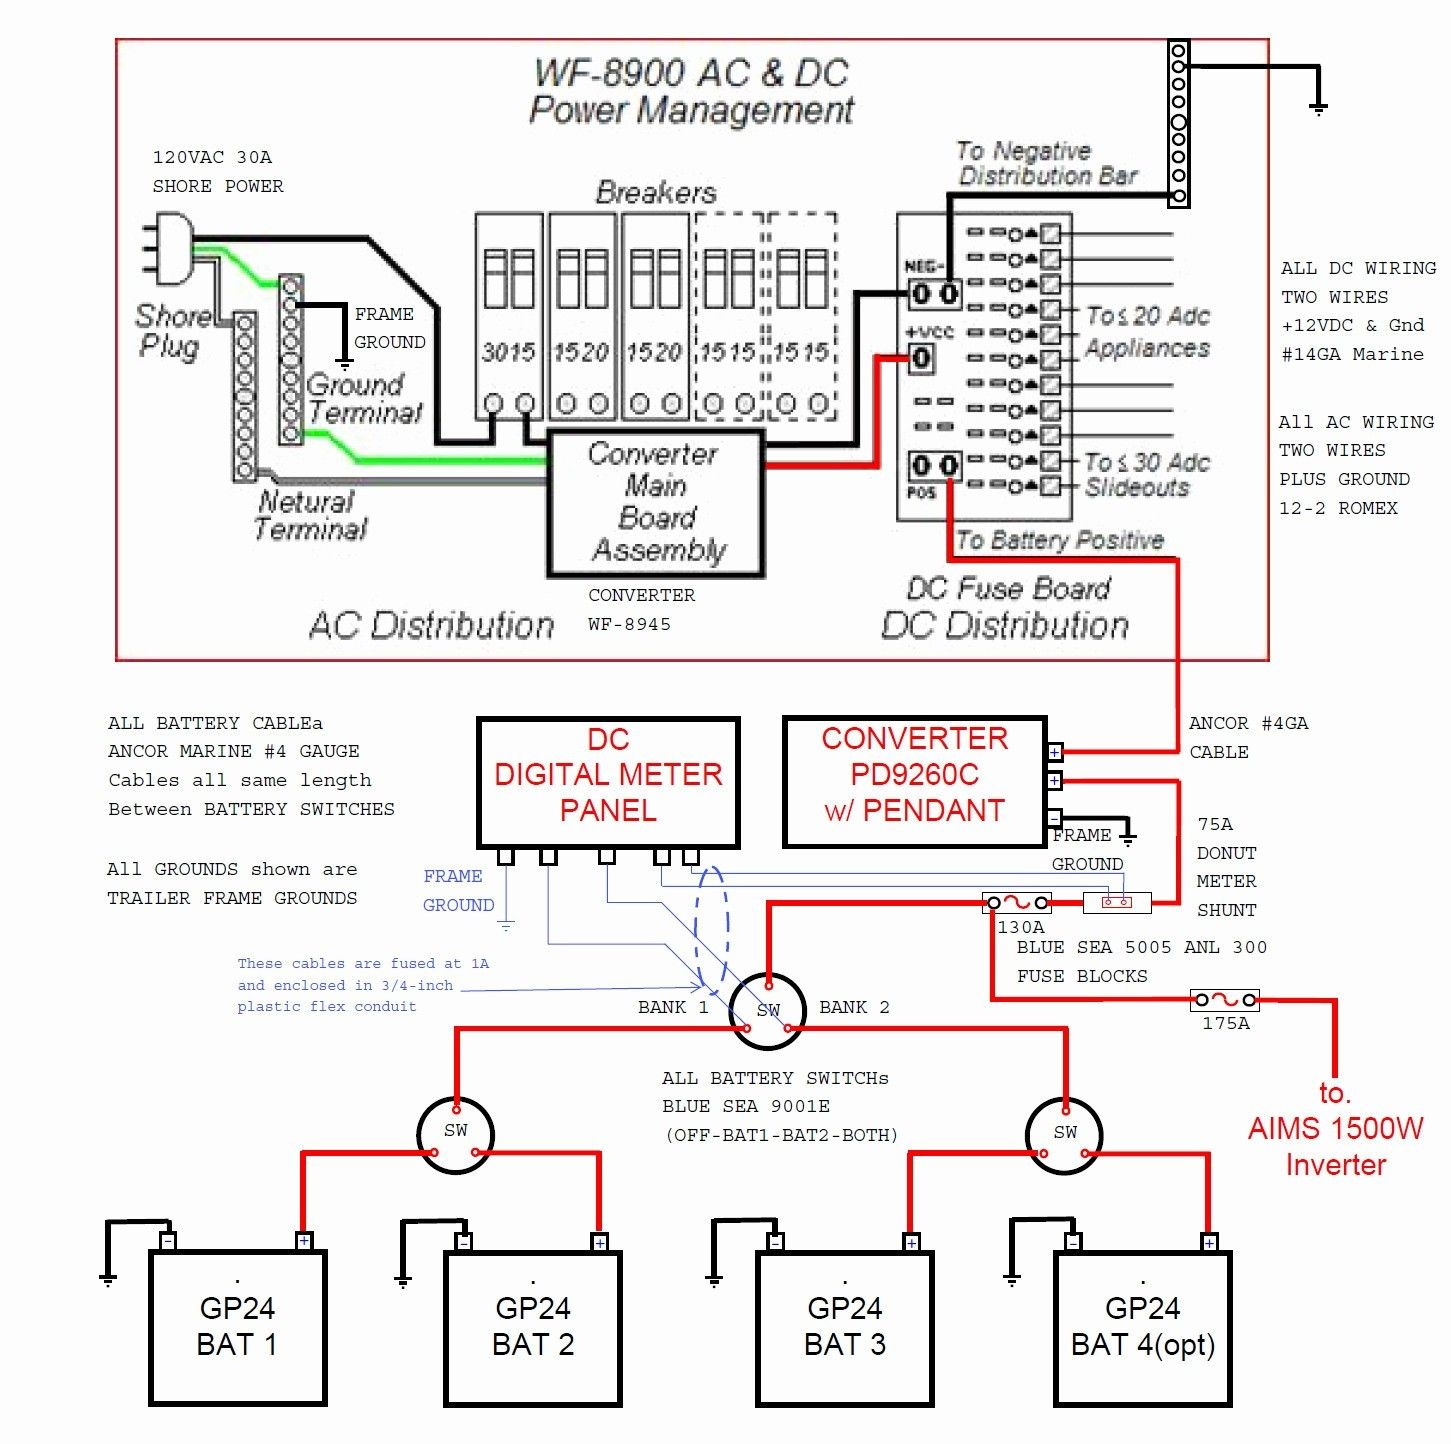 30 amp rv wiring diagram blog wiring diagram 50 amp to 30 amp rv wiring diagram [ 1451 x 1444 Pixel ]